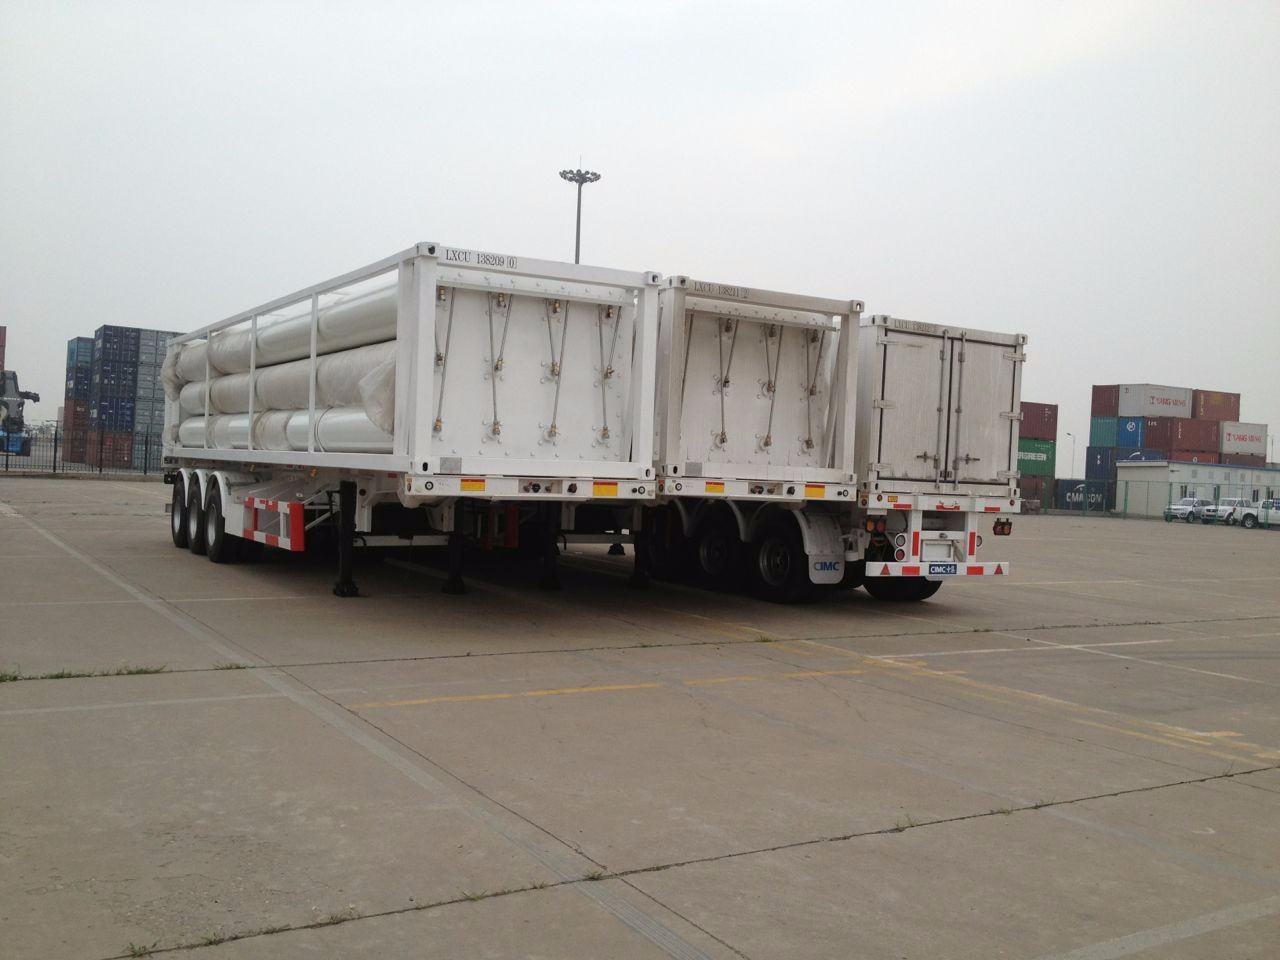 10 Tubes CNG Tube Trailer Manufacturers, 10 Tubes CNG Tube Trailer Factory, Supply 10 Tubes CNG Tube Trailer